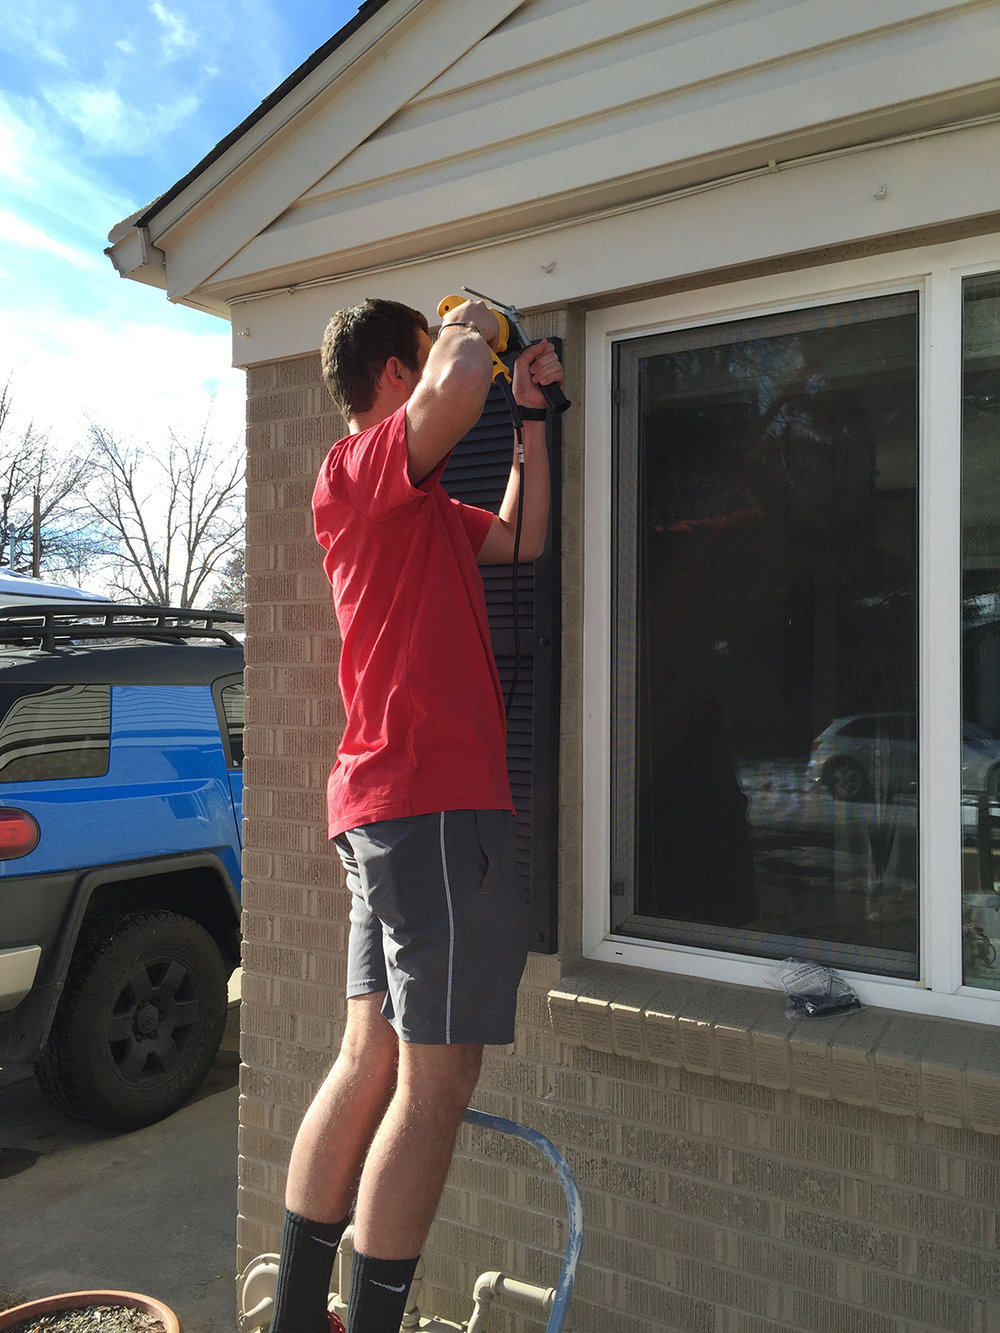 Man repairing exterior window